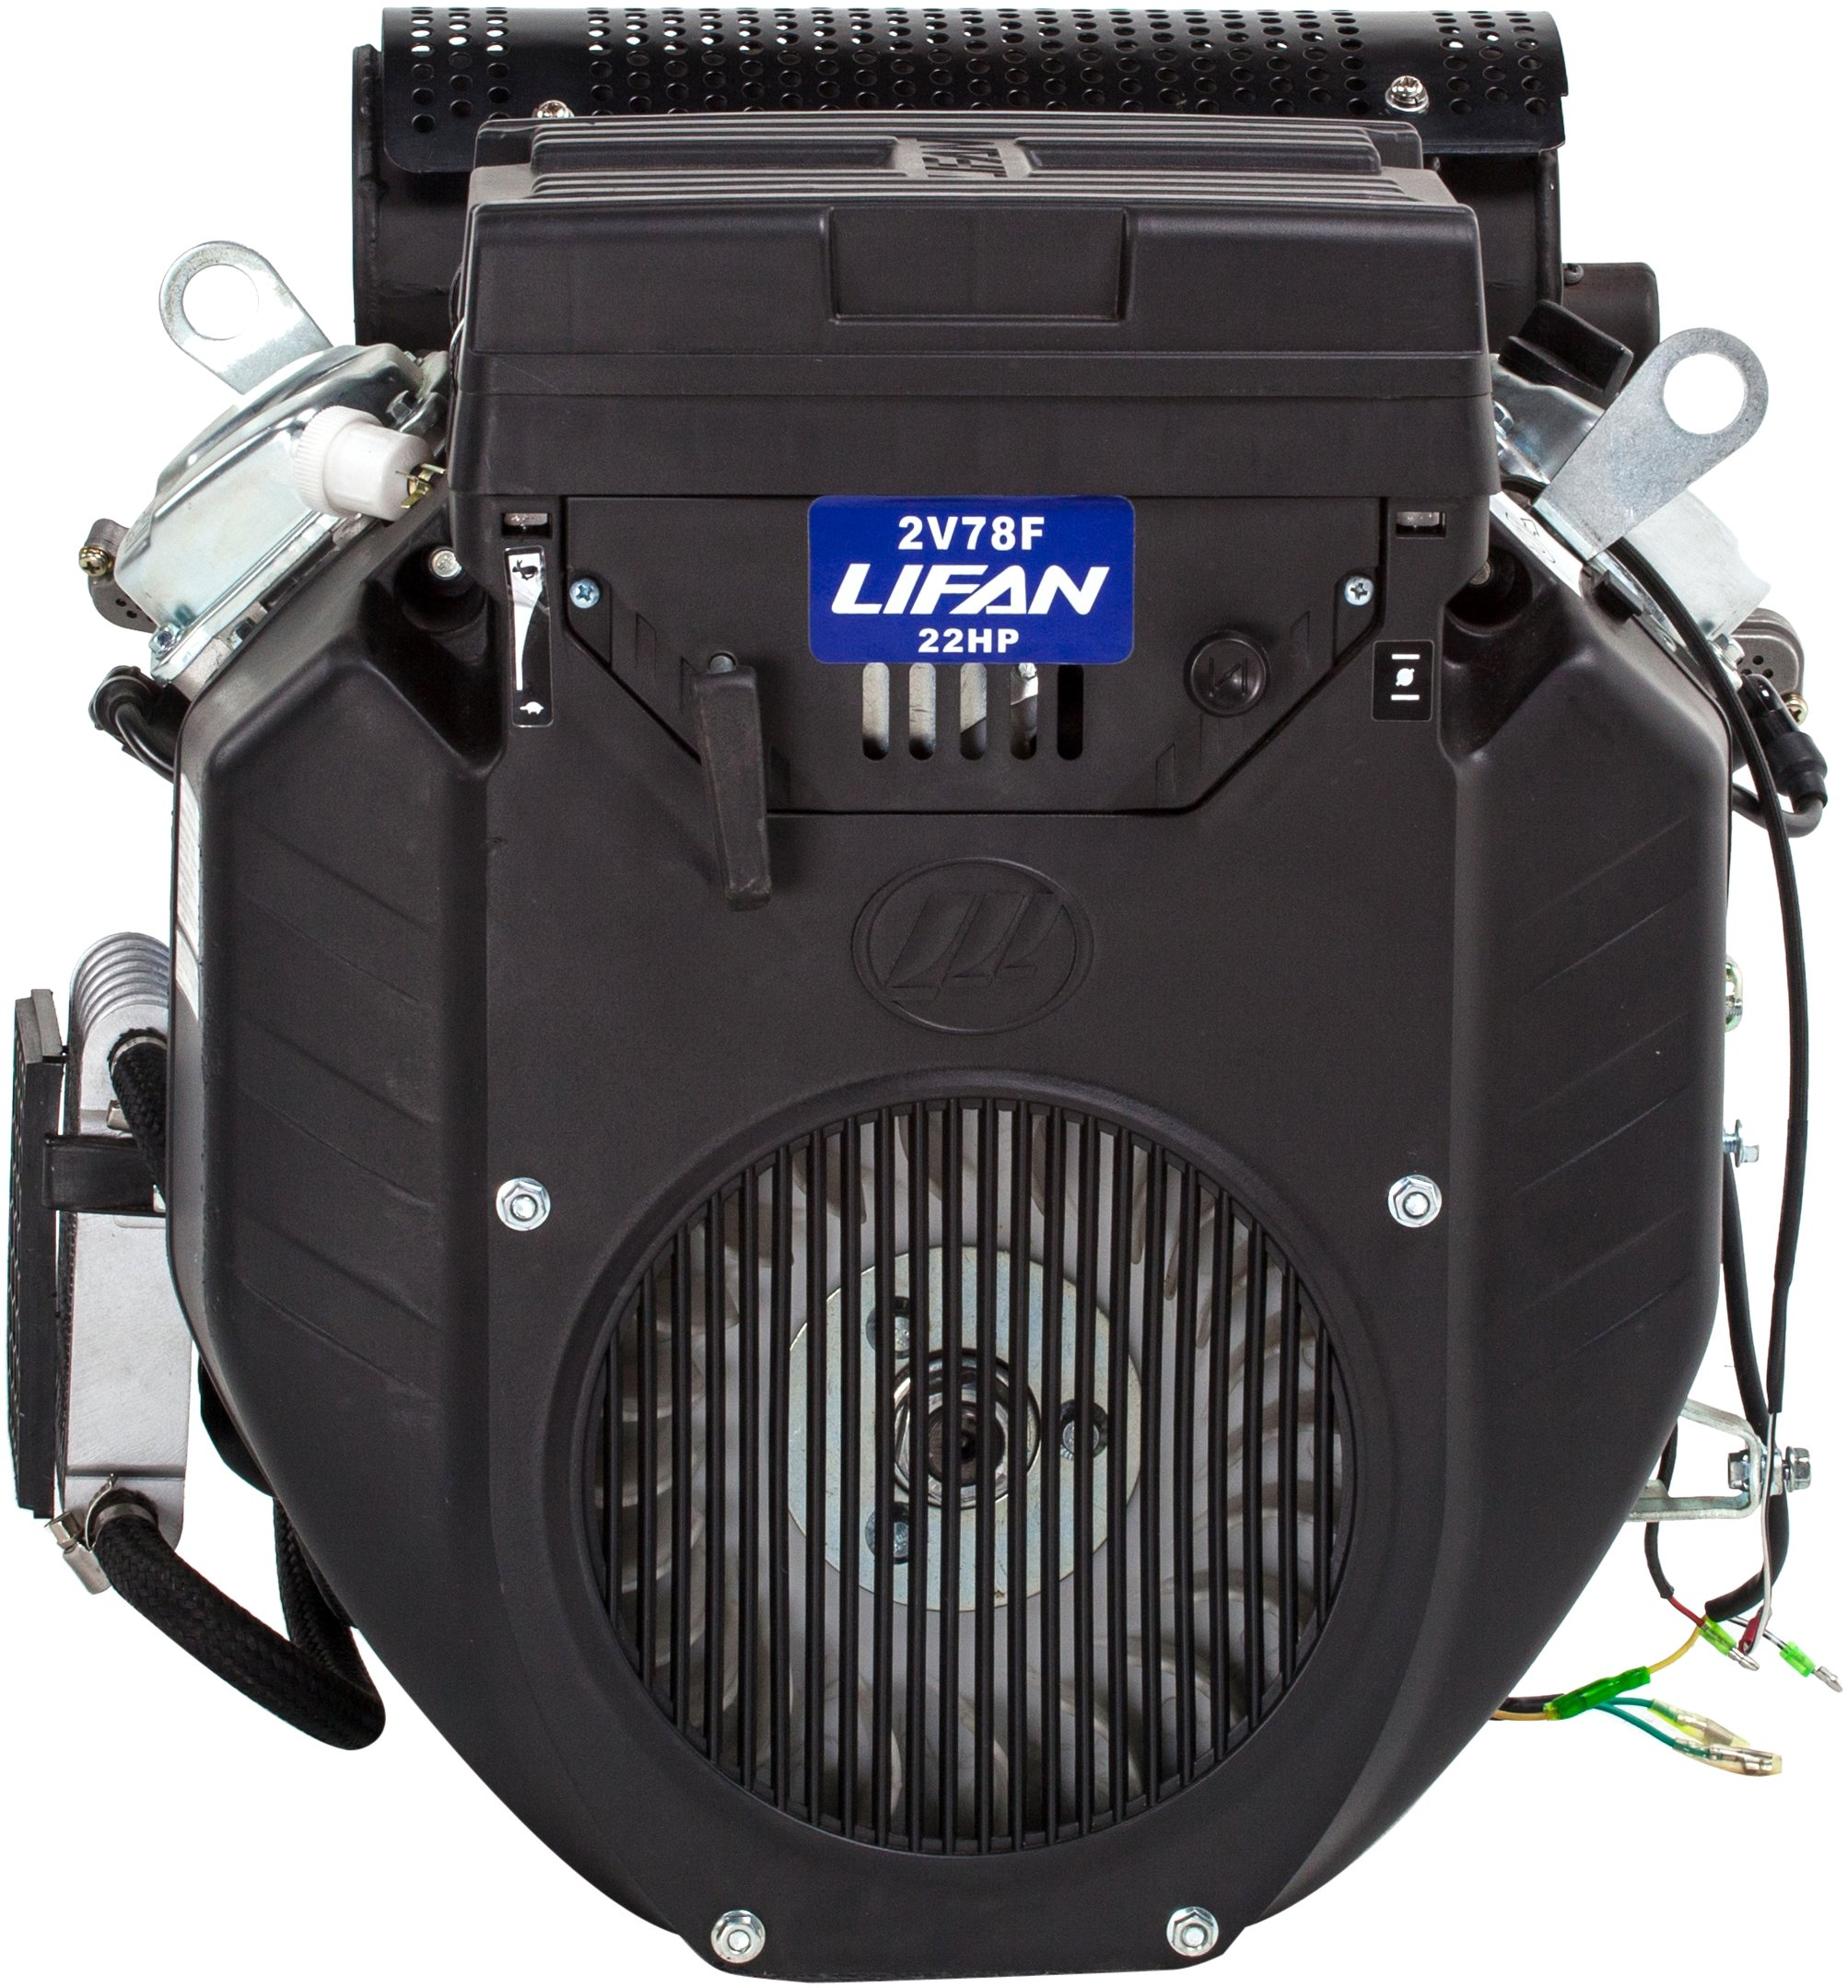 Lifan LF2V78-2DQT Industrial Grade 22 HP 688cc V-Twin 4-Stroke OHV Engine with Electric Start and 1-1/8-Inch Shaft